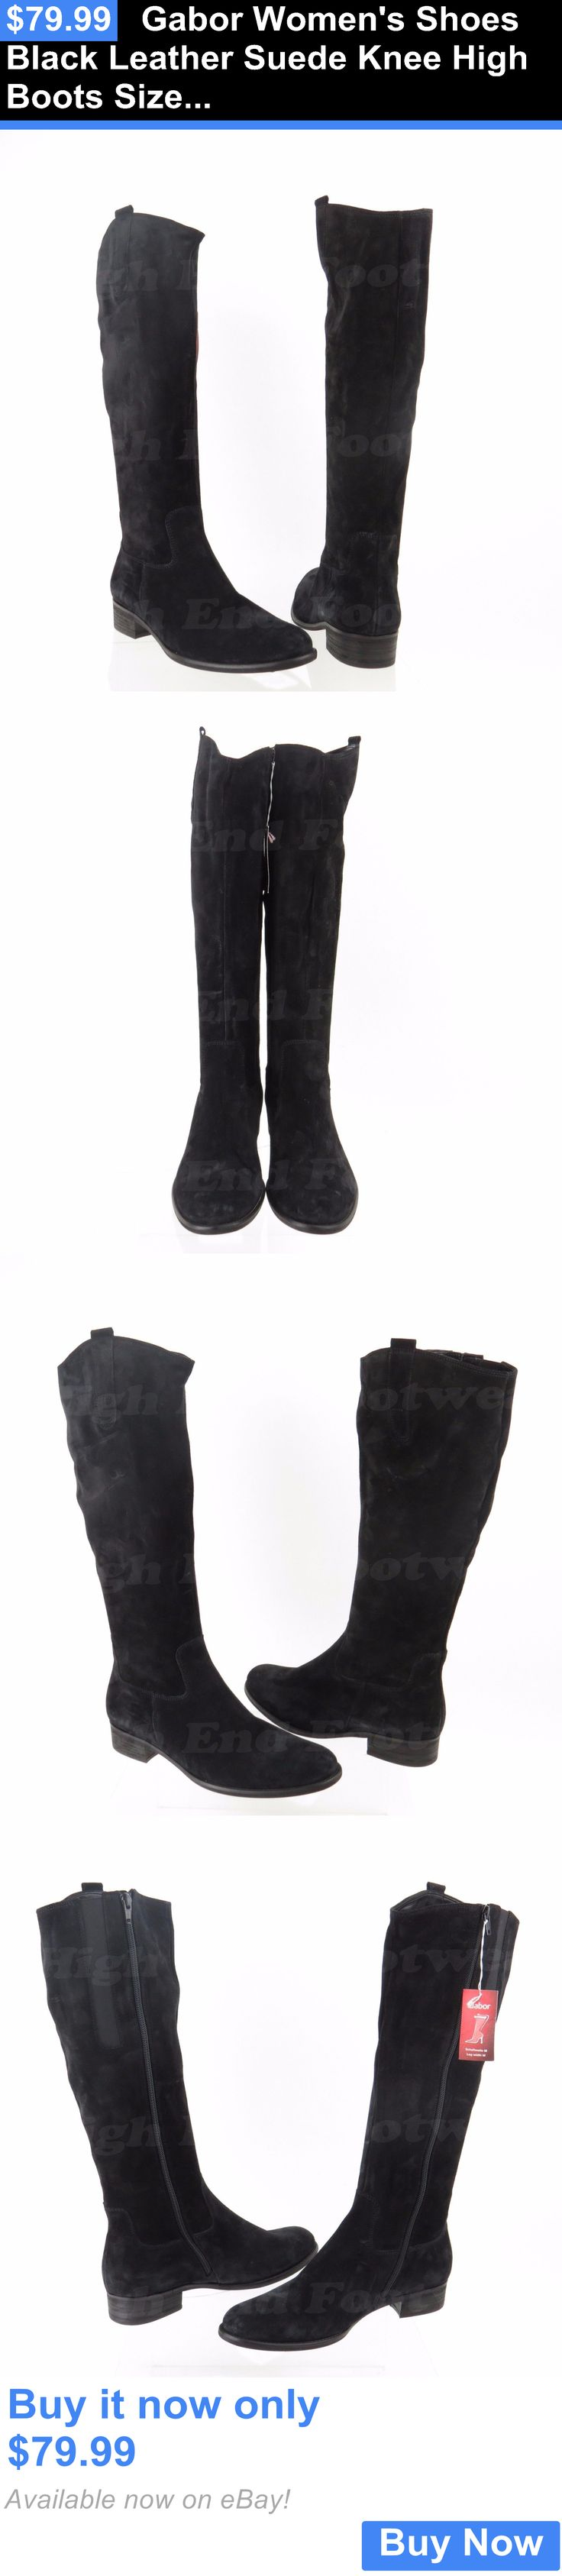 Women Boots: Gabor Womens Shoes Black Leather Suede Knee High Boots Size Uk 6.5, Us 9 M New BUY IT NOW ONLY: $79.99